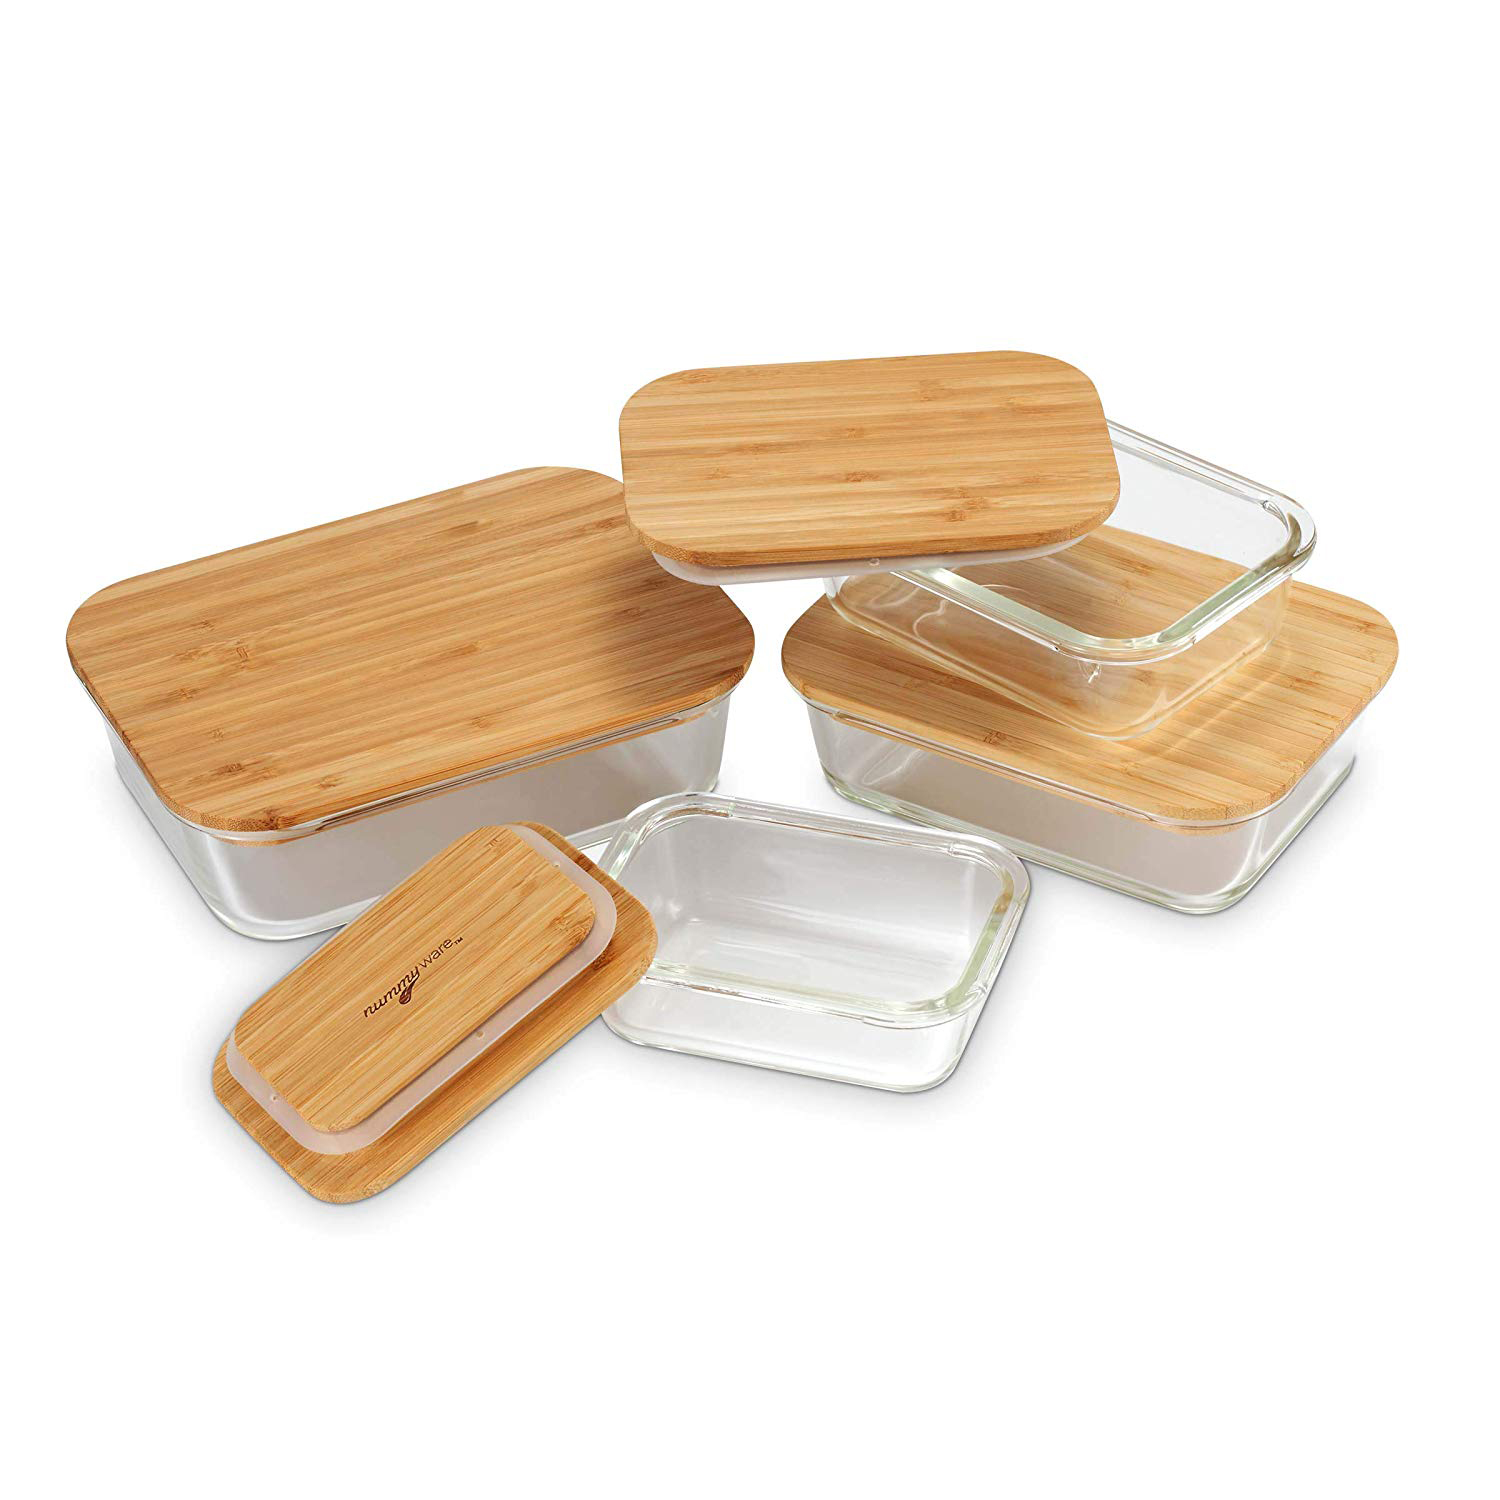 Nummyware Plastic-free Glass Food Containers With Sustainable Bamboo Tops